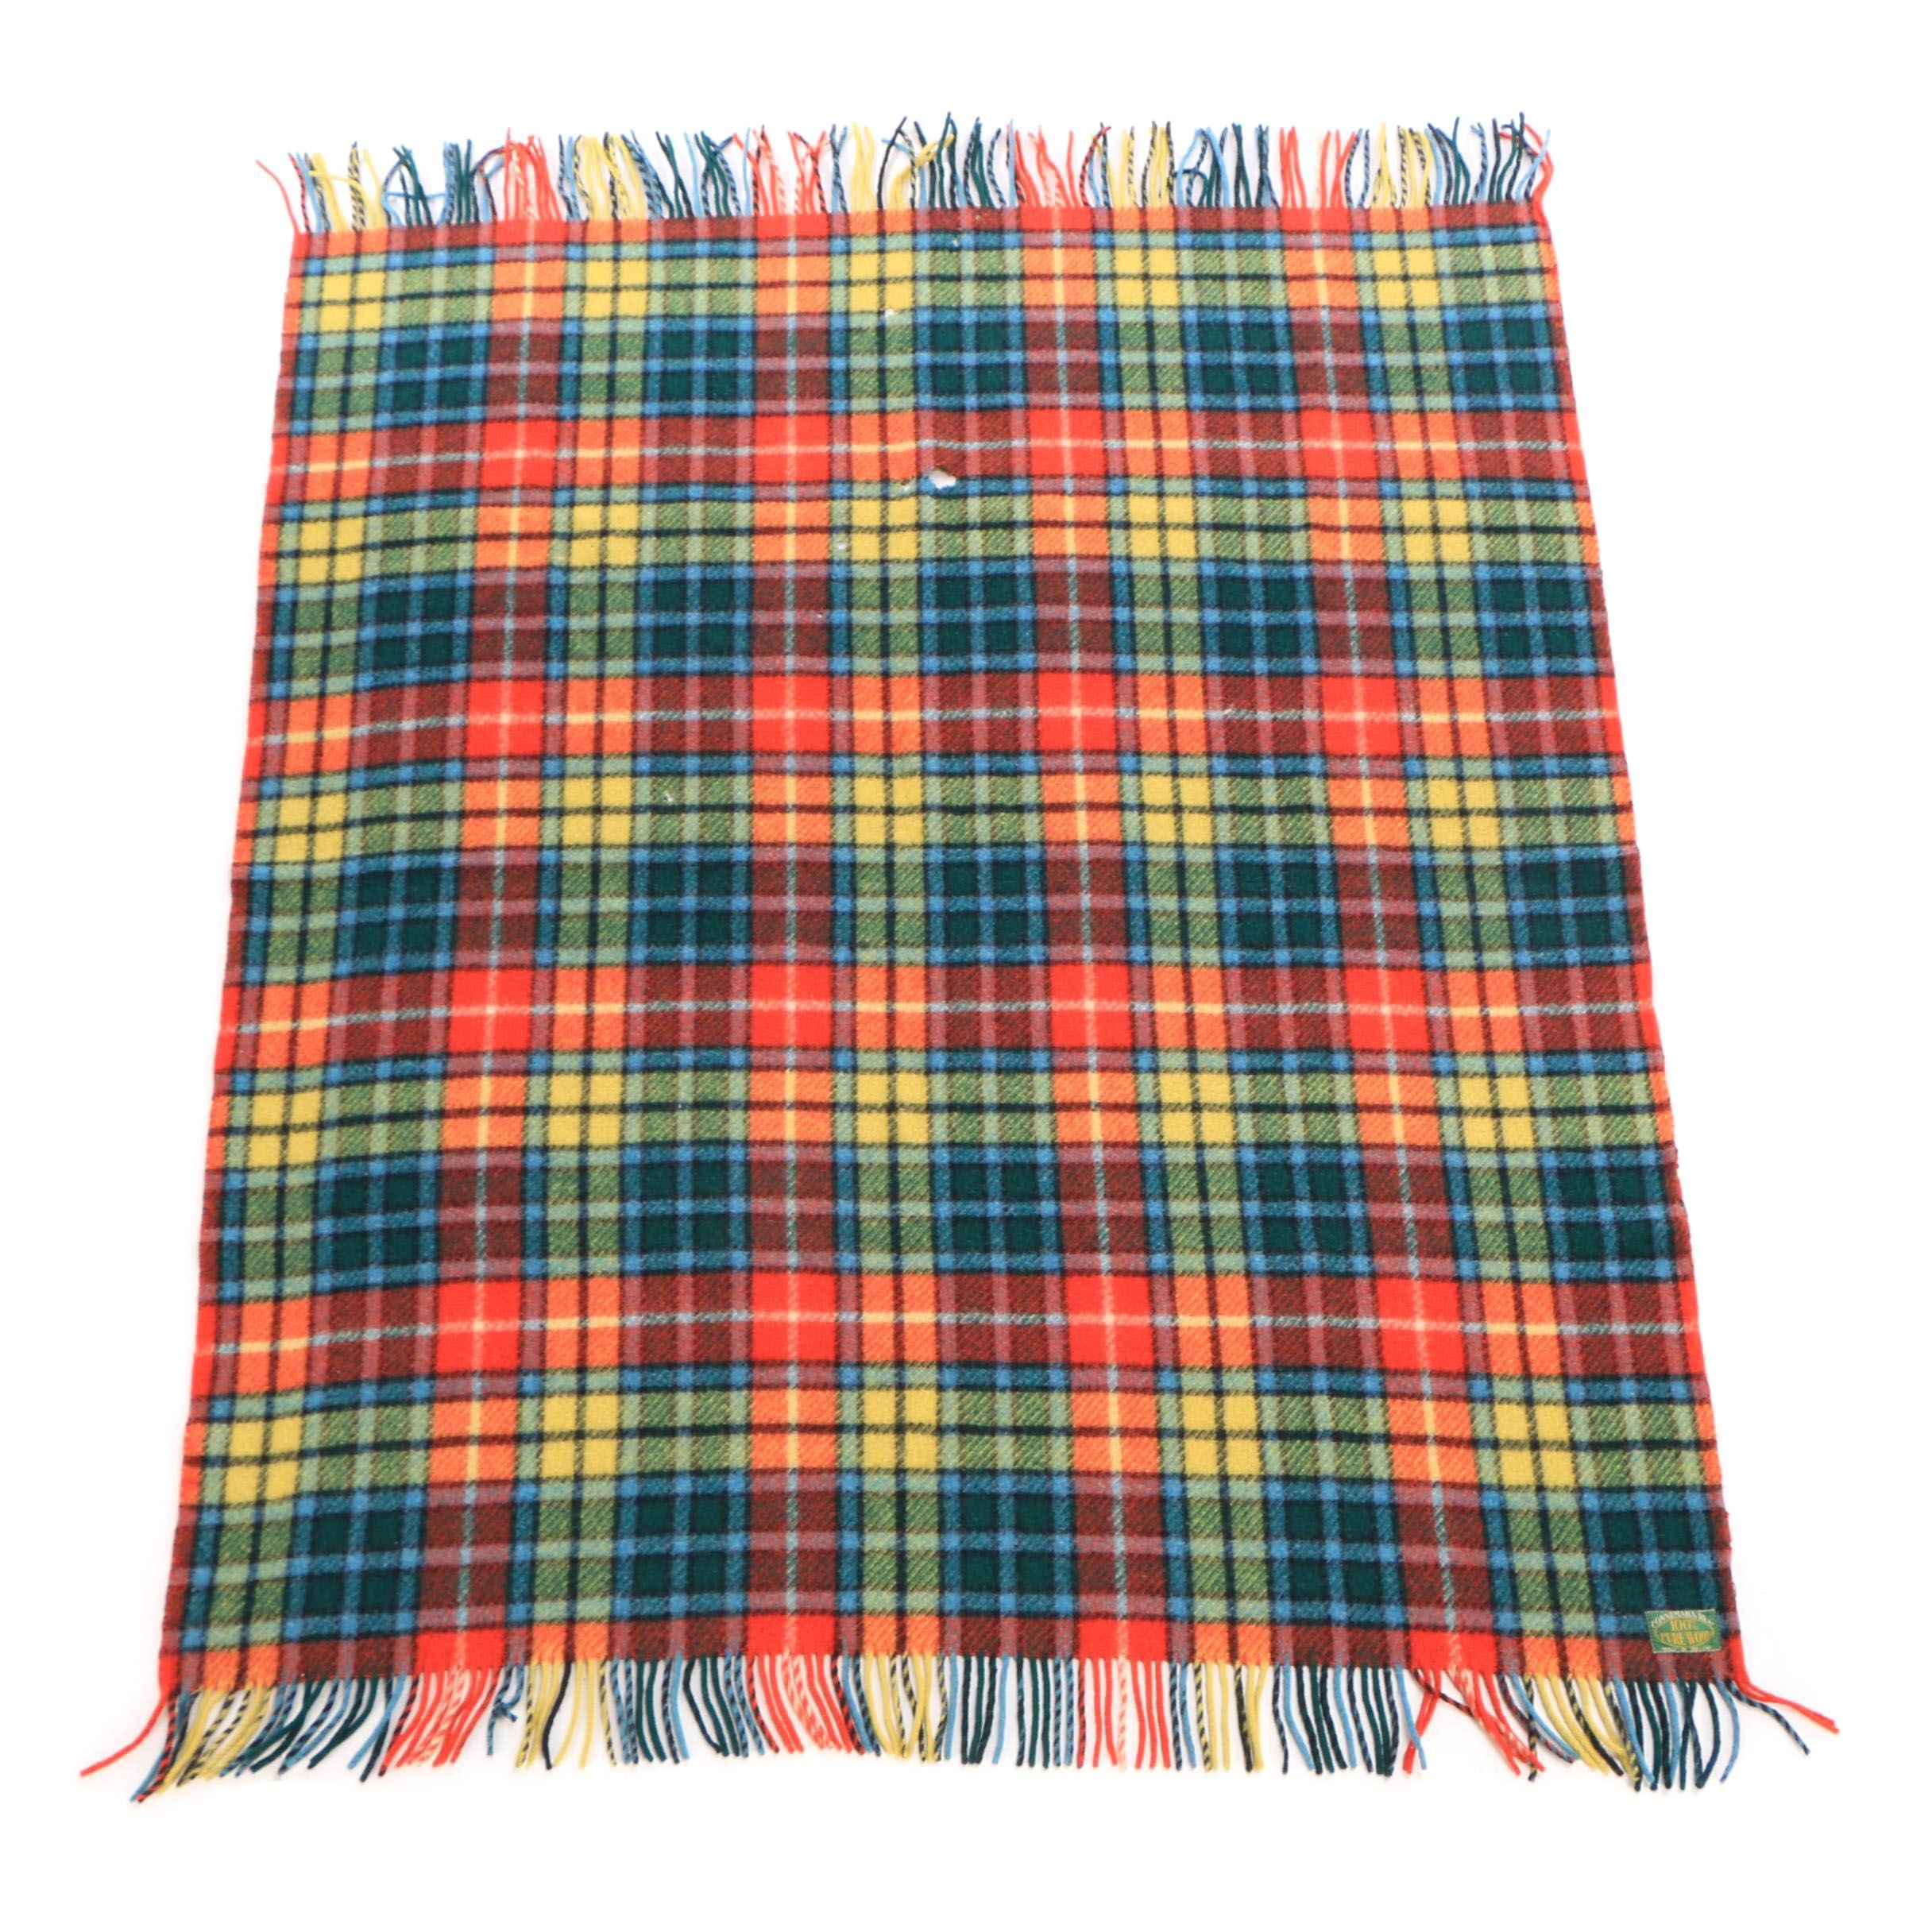 "Woven Irish Connemara Rug ""Buchanan Tartan"" Wool Throw Blanket"